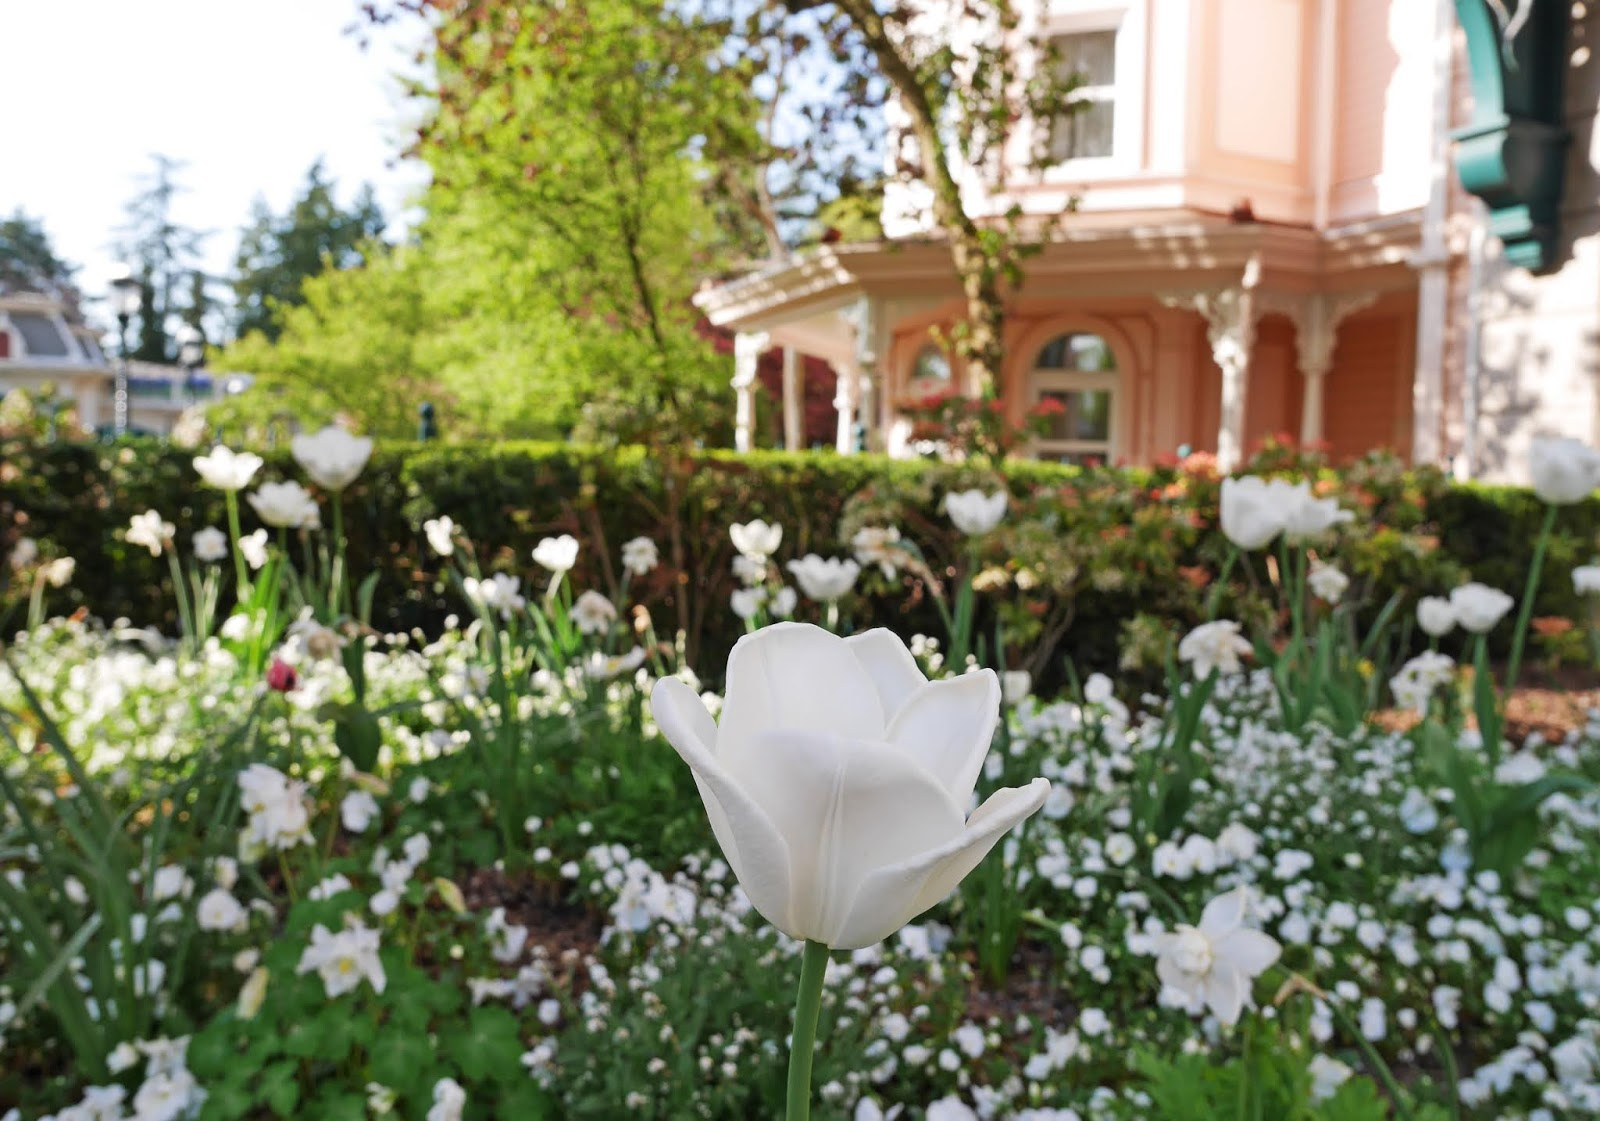 Tulips in front of the Disneyland Hotel at Disneyland Paris